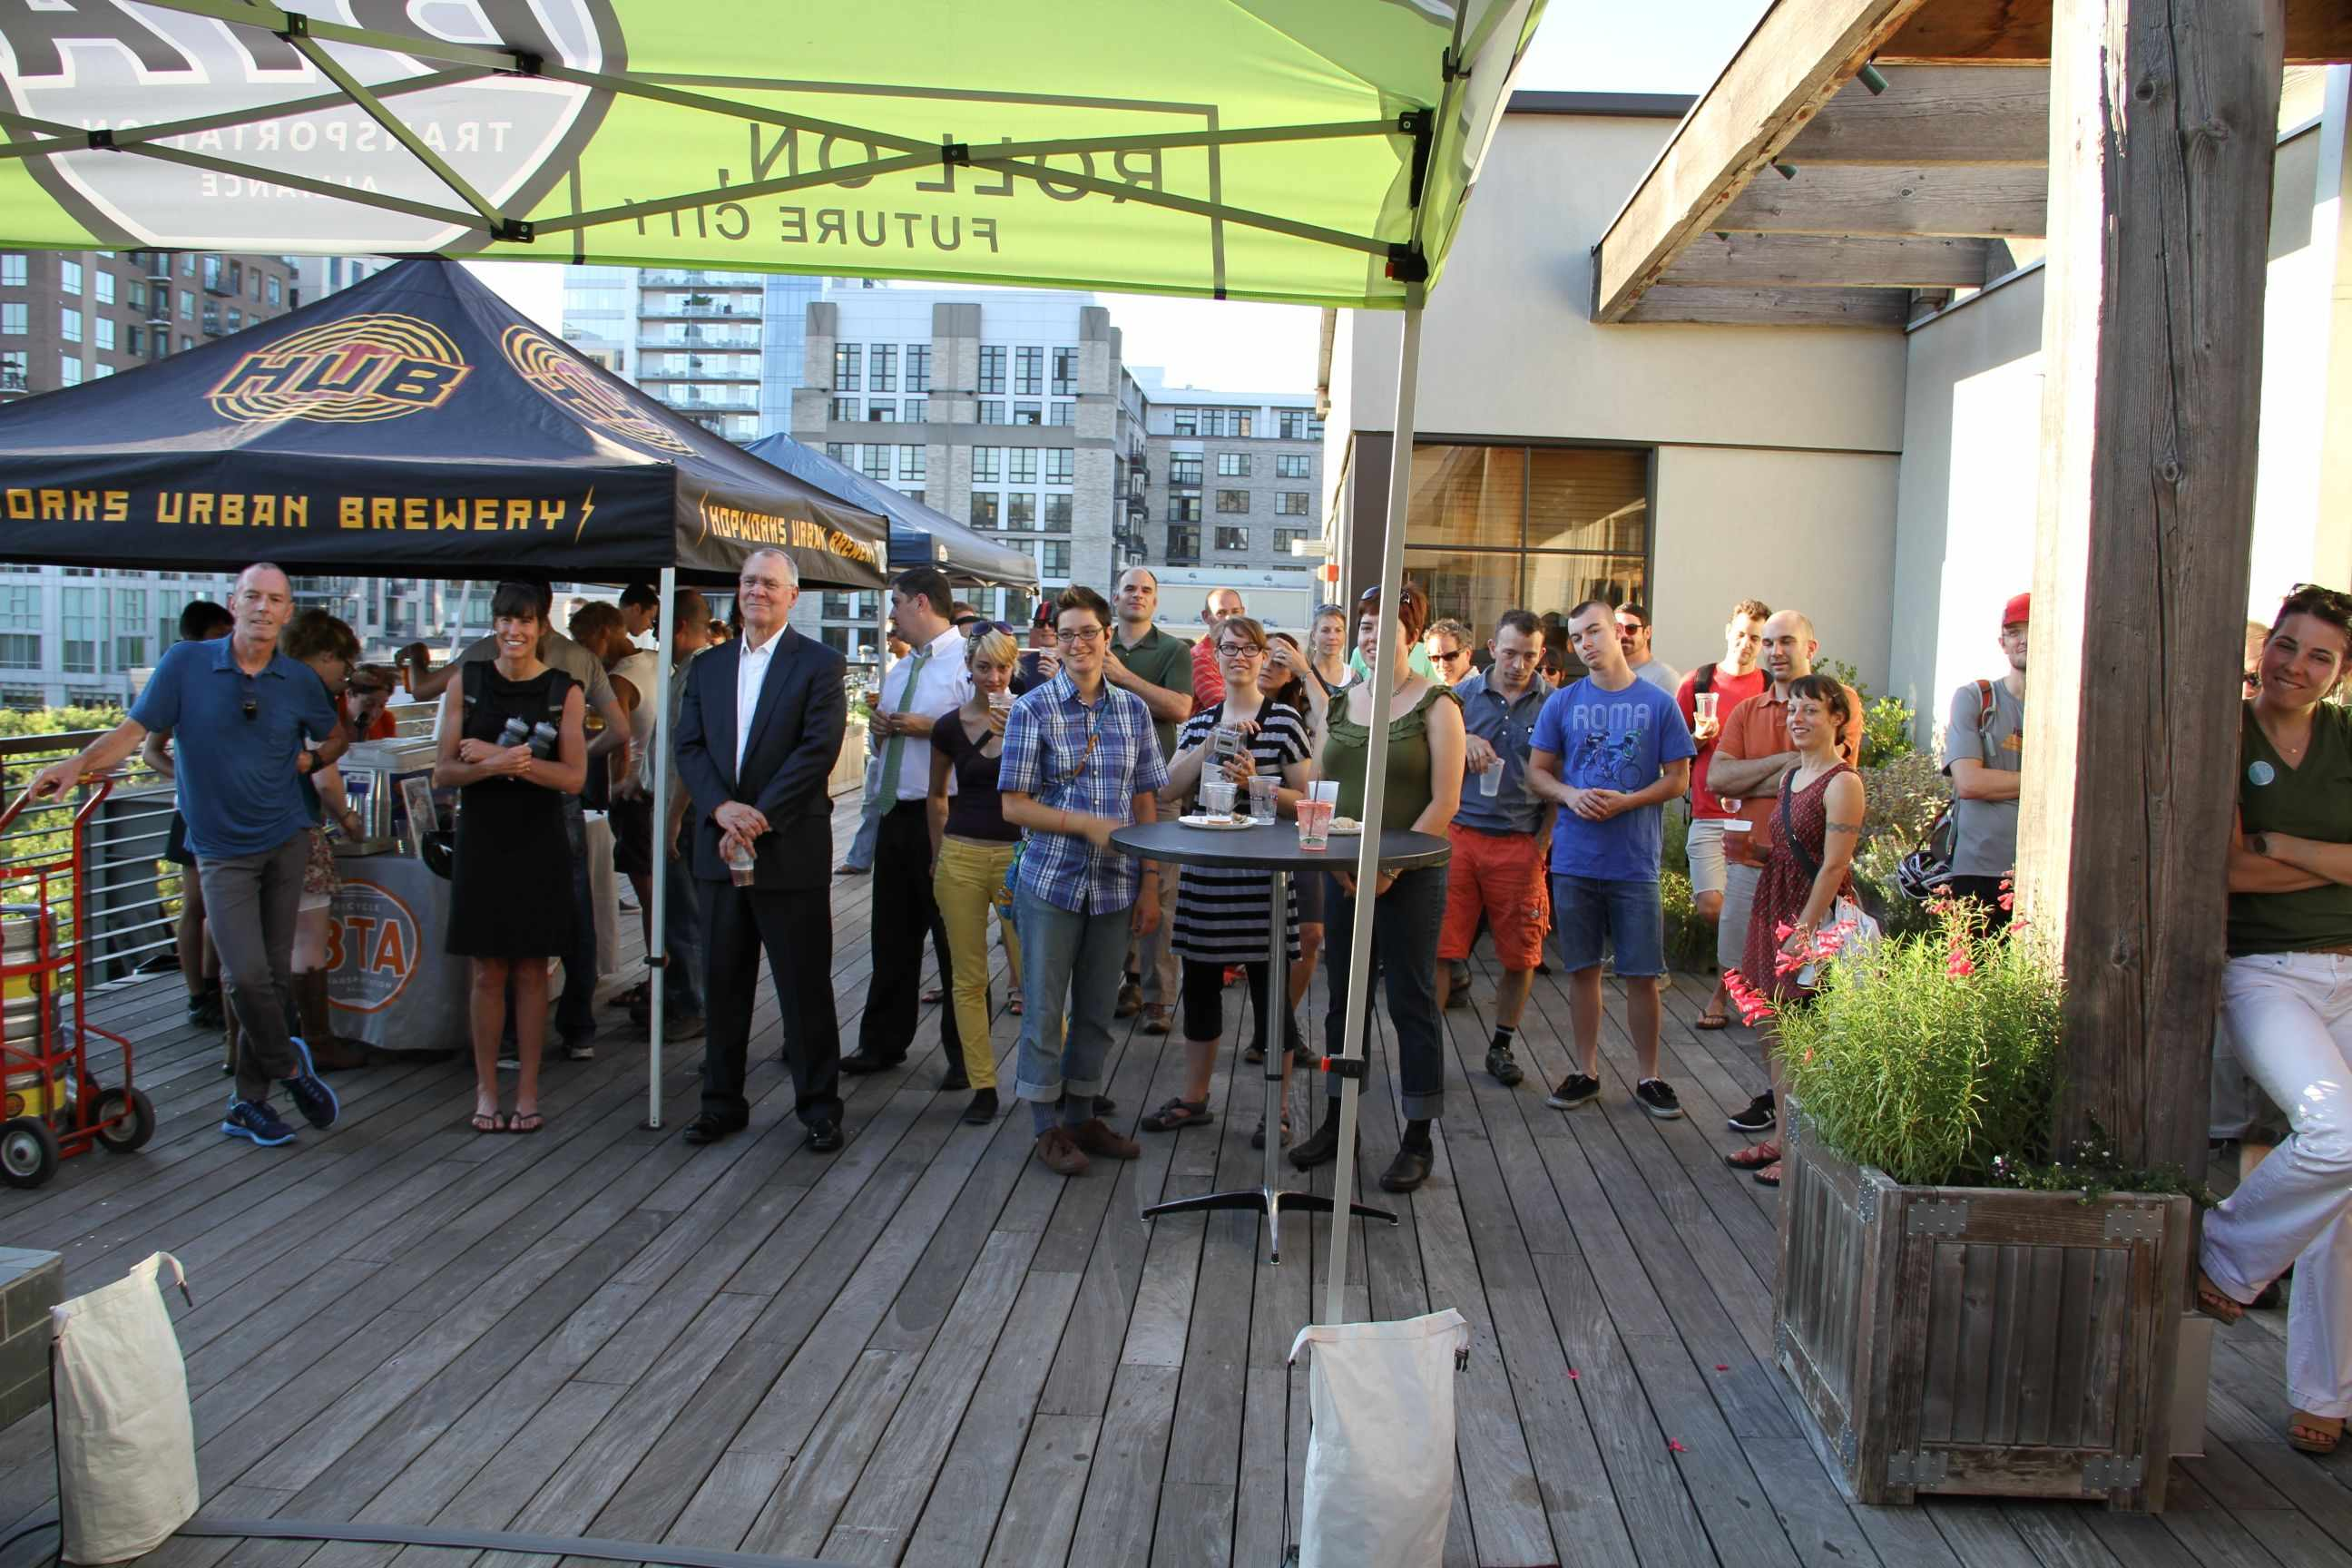 The rooftop Moots/CyclePath party